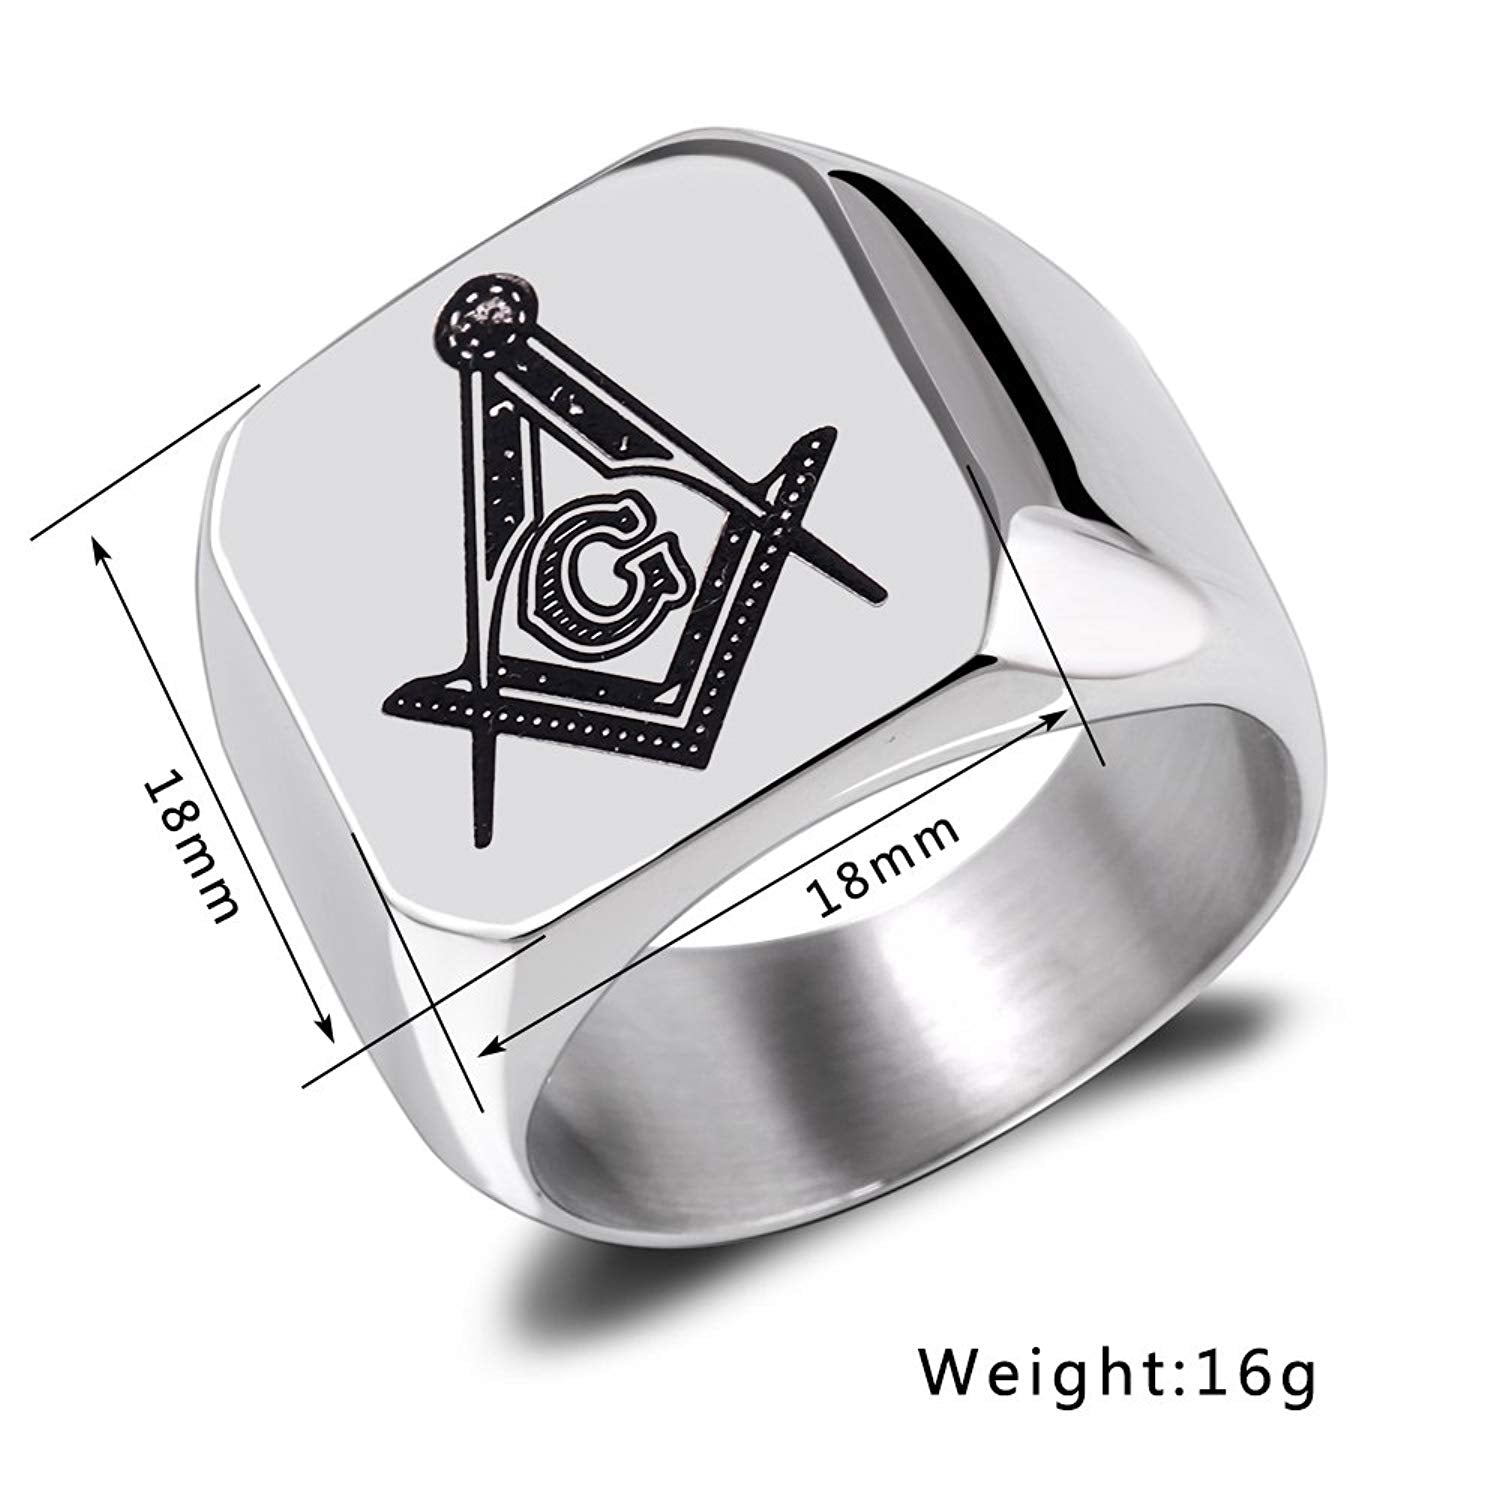 Pivotal focuses with respect to the basic sparkling of men masonic rings